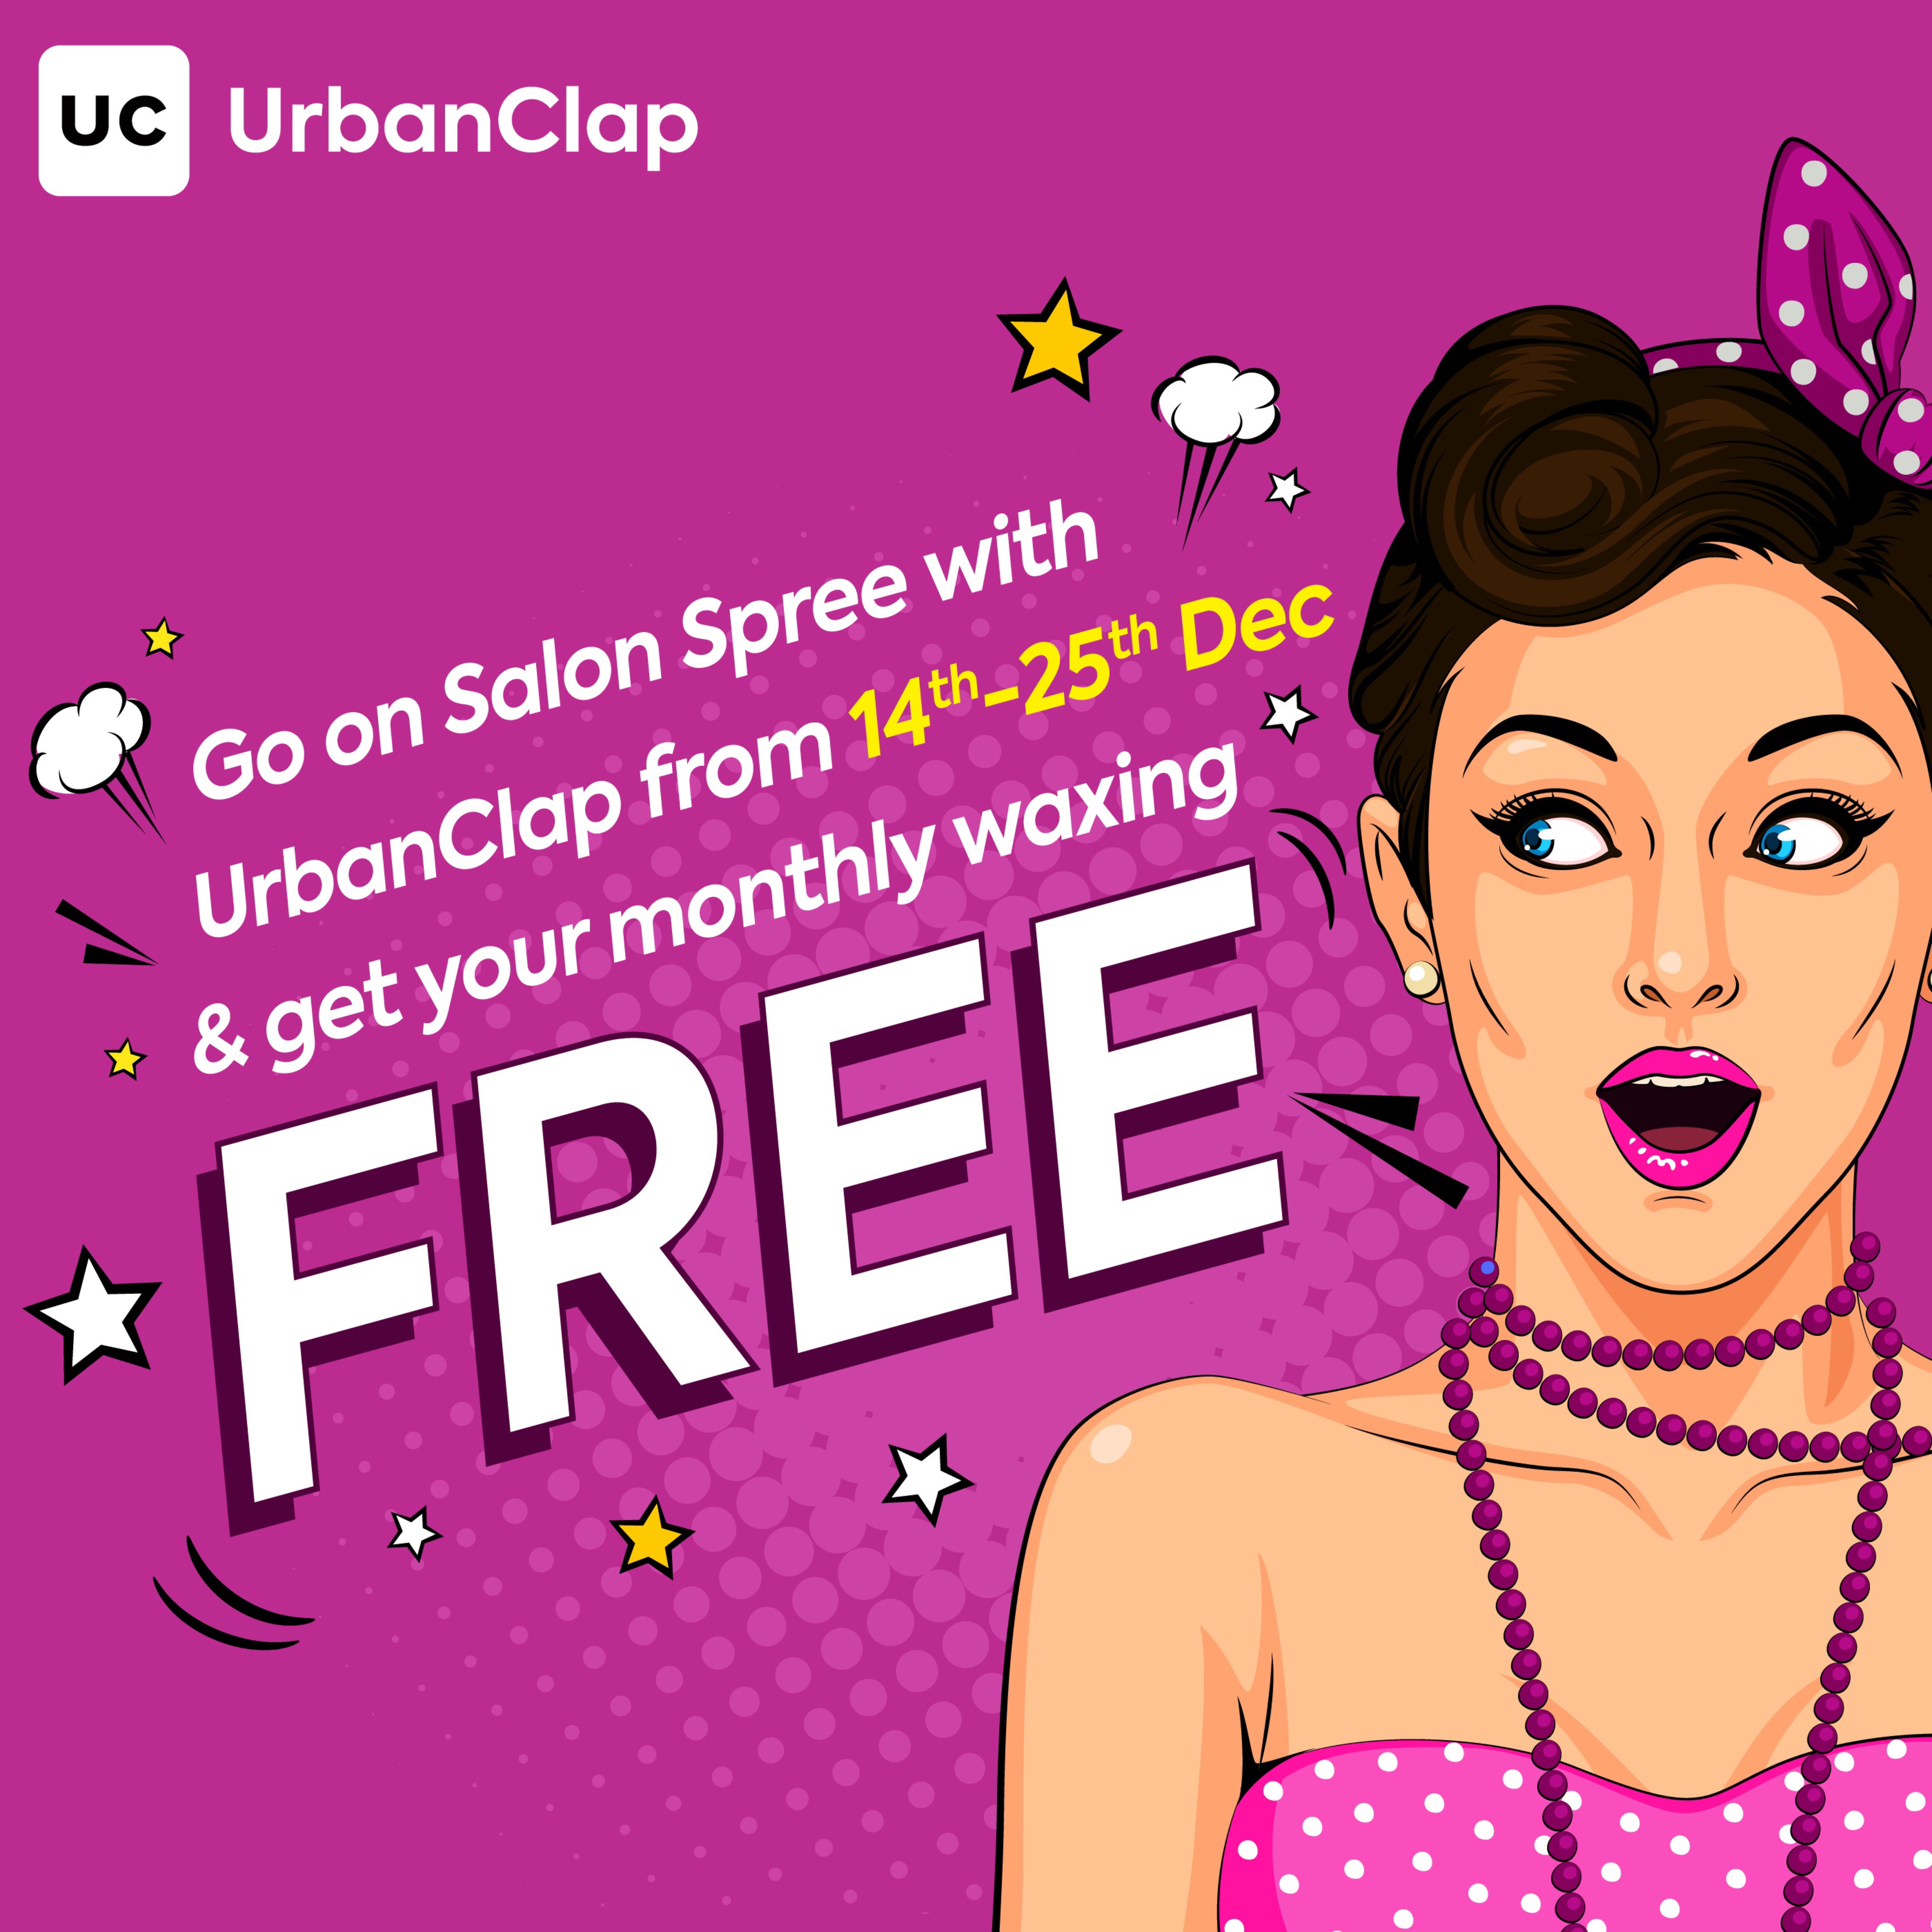 I am so excited about going on my Salon Spree with @urbanclap. Grab your salon service freebies today.  UrbanClap is coming up with their SALON SPREE for the first time ‪from the 14th - 25th of December‬'17.  GO ON A SALON SPREE with UrbanClap with salon services at your DOORSTEP!! And avail  FREE WAXING SERVICES with their beauty salon packages.  #UCSalonSpree #UrbanClap #YourServiceExpert #MakeLifeSimple #SalonAtHome #fashionblogger #fashionindia #beautyblogger #ootdfashion